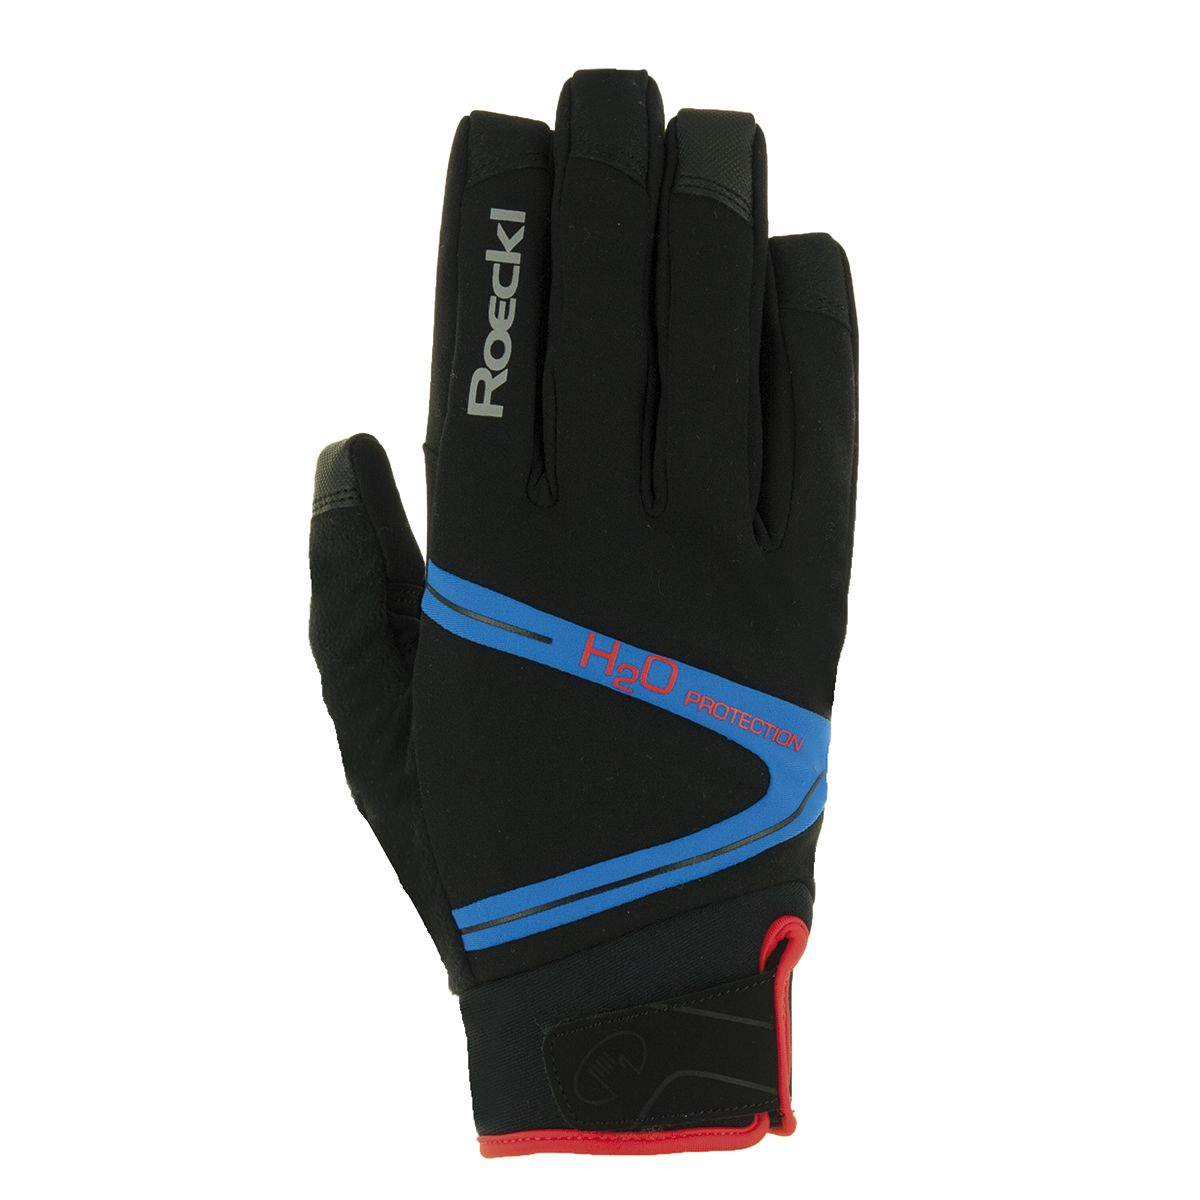 RHONE winter cycling gloves